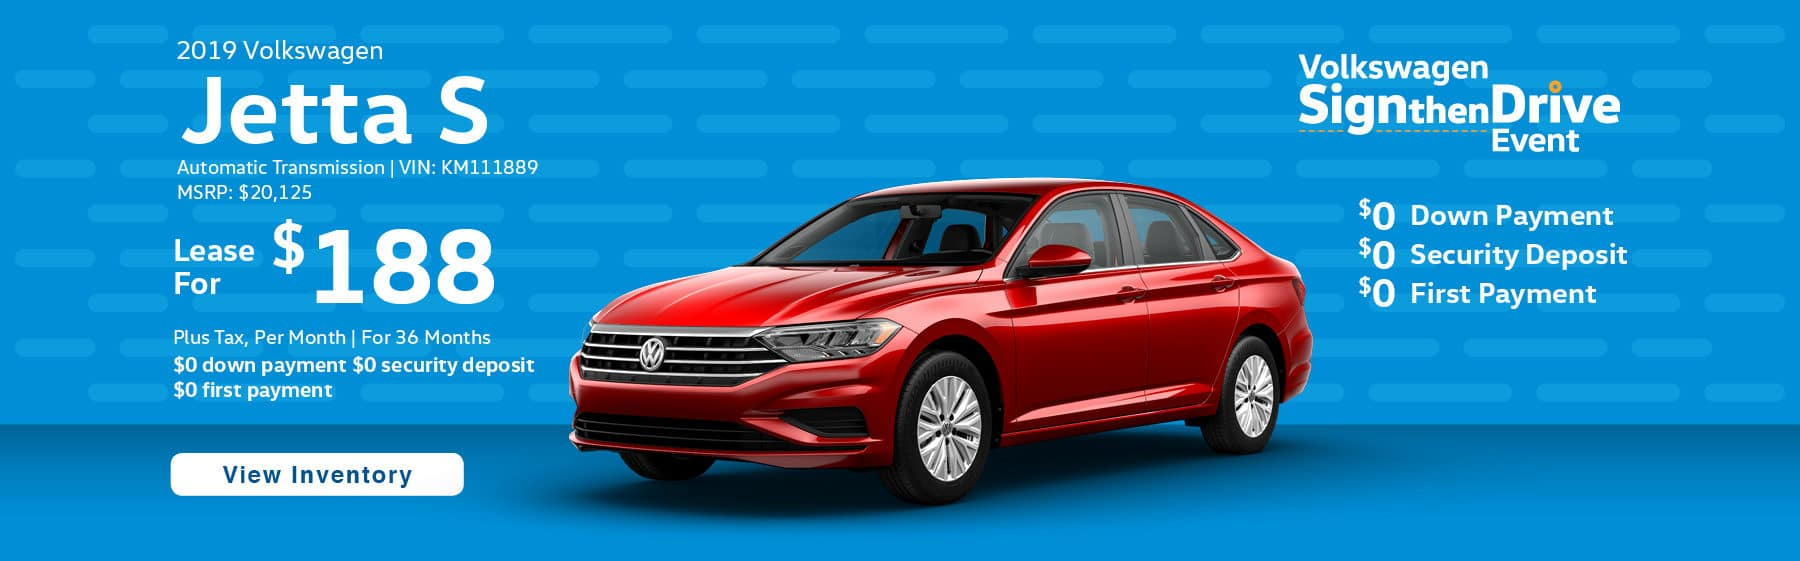 Lease the 2019 Volkswagen Jetta S for $188 plus tax for 36 months. $0 Down payment required.